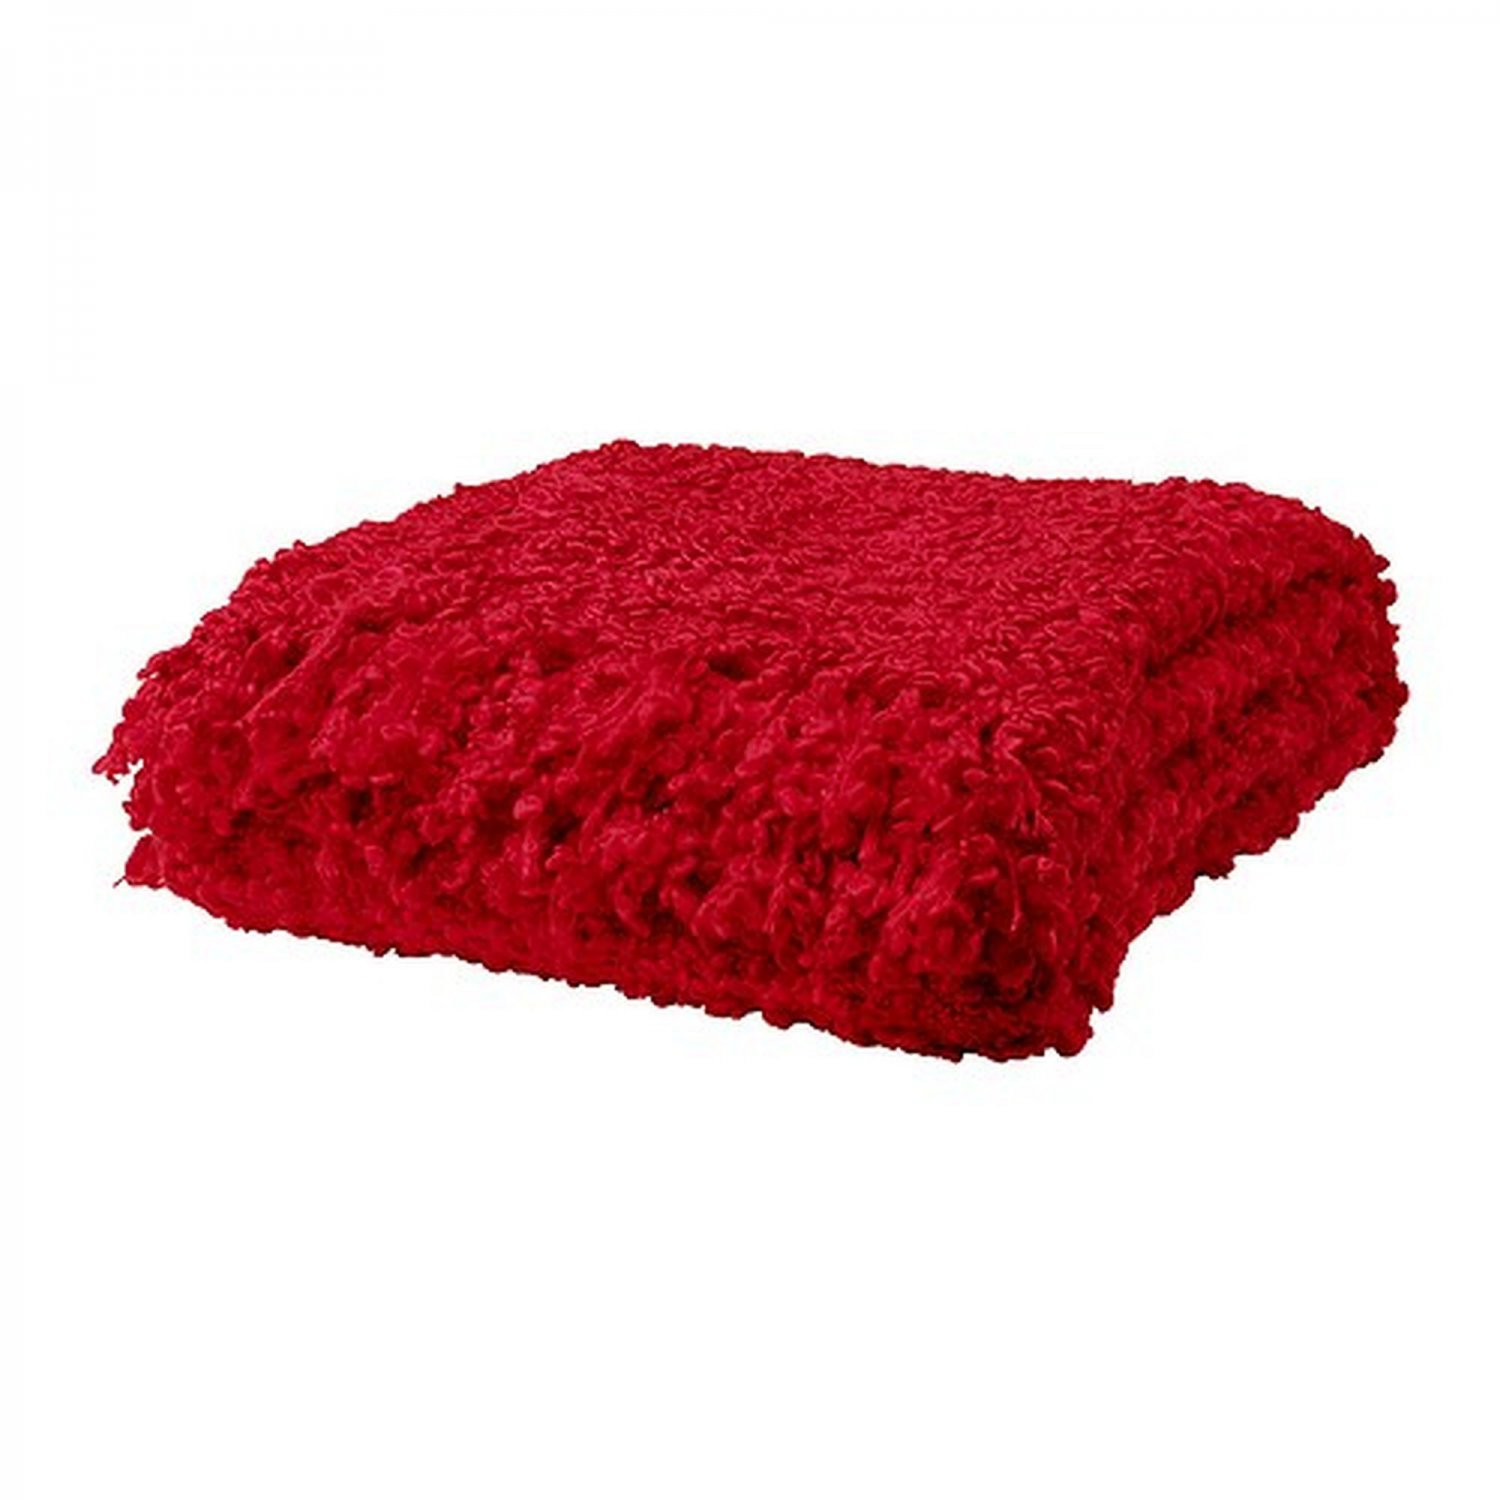 Ikea Sofa Round Rock Ikea Ofelia Red Throw Blanket Photo Prop Textured